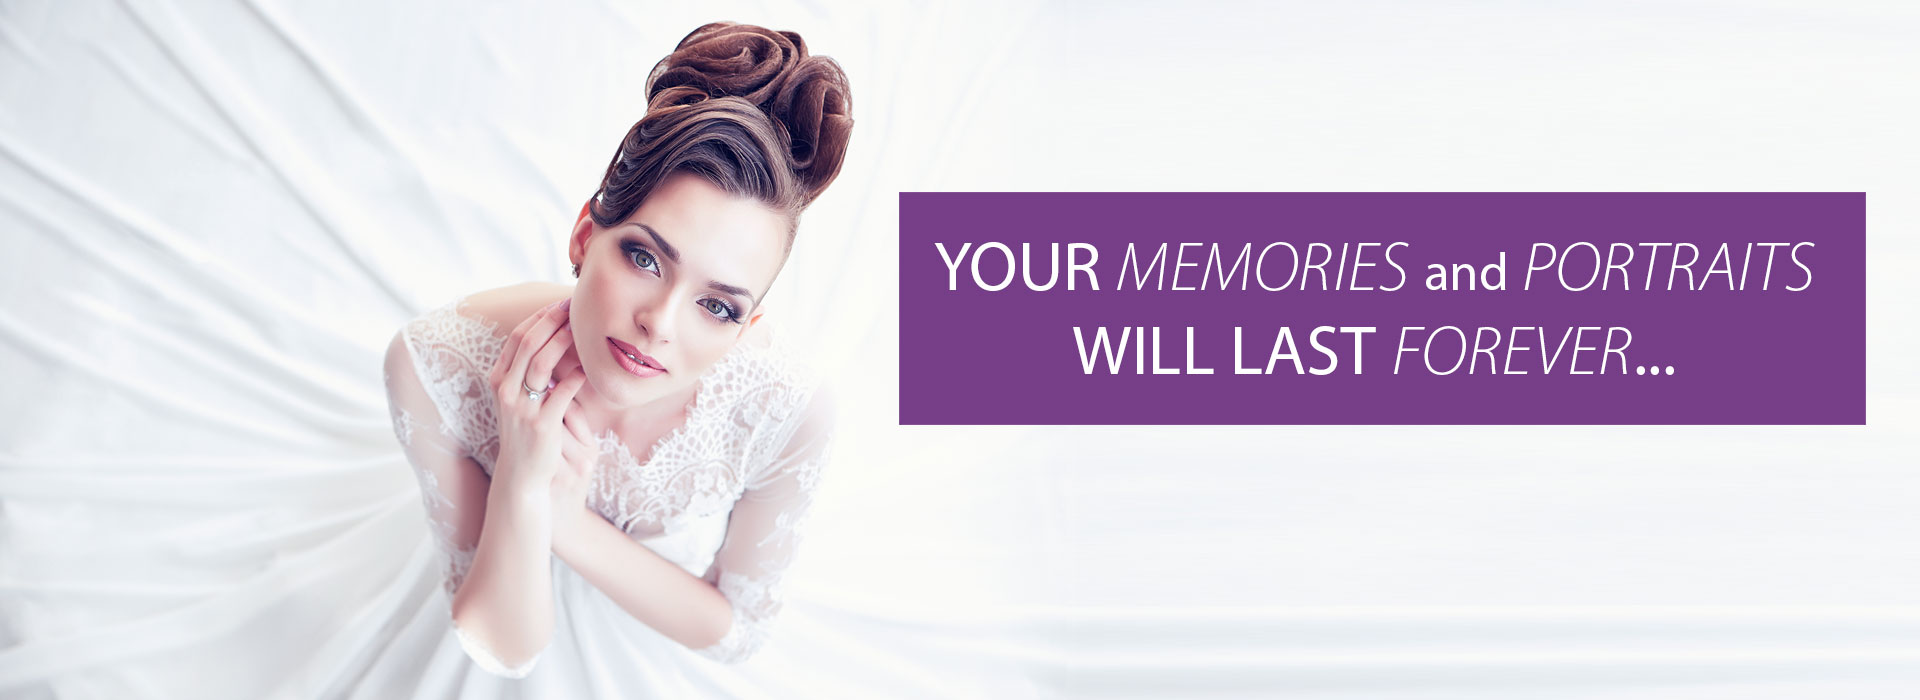 bridal-packages-specials-laser-treatment-botox-filler-lake-norman-aesthetics-concierge-med-spa-laser-center-mooresville-nc-28117